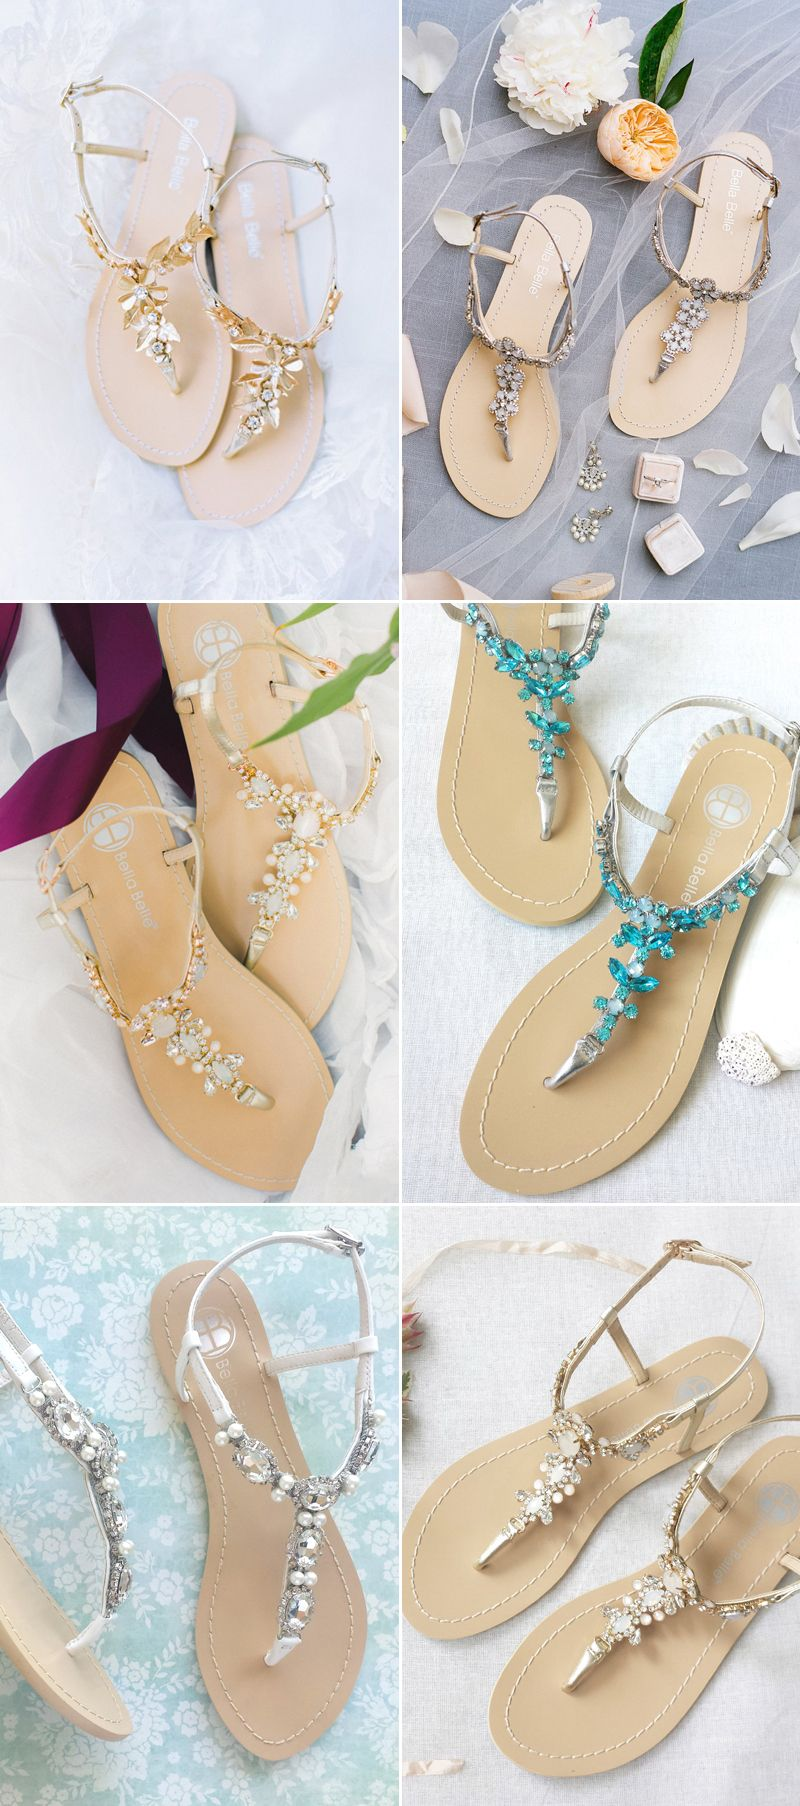 27 Absolutely Gorgeous Shoes For Beach Weddings Praise Wedding Beach Wedding Shoes White Sandals Wedding Wedding Accessories Shoes